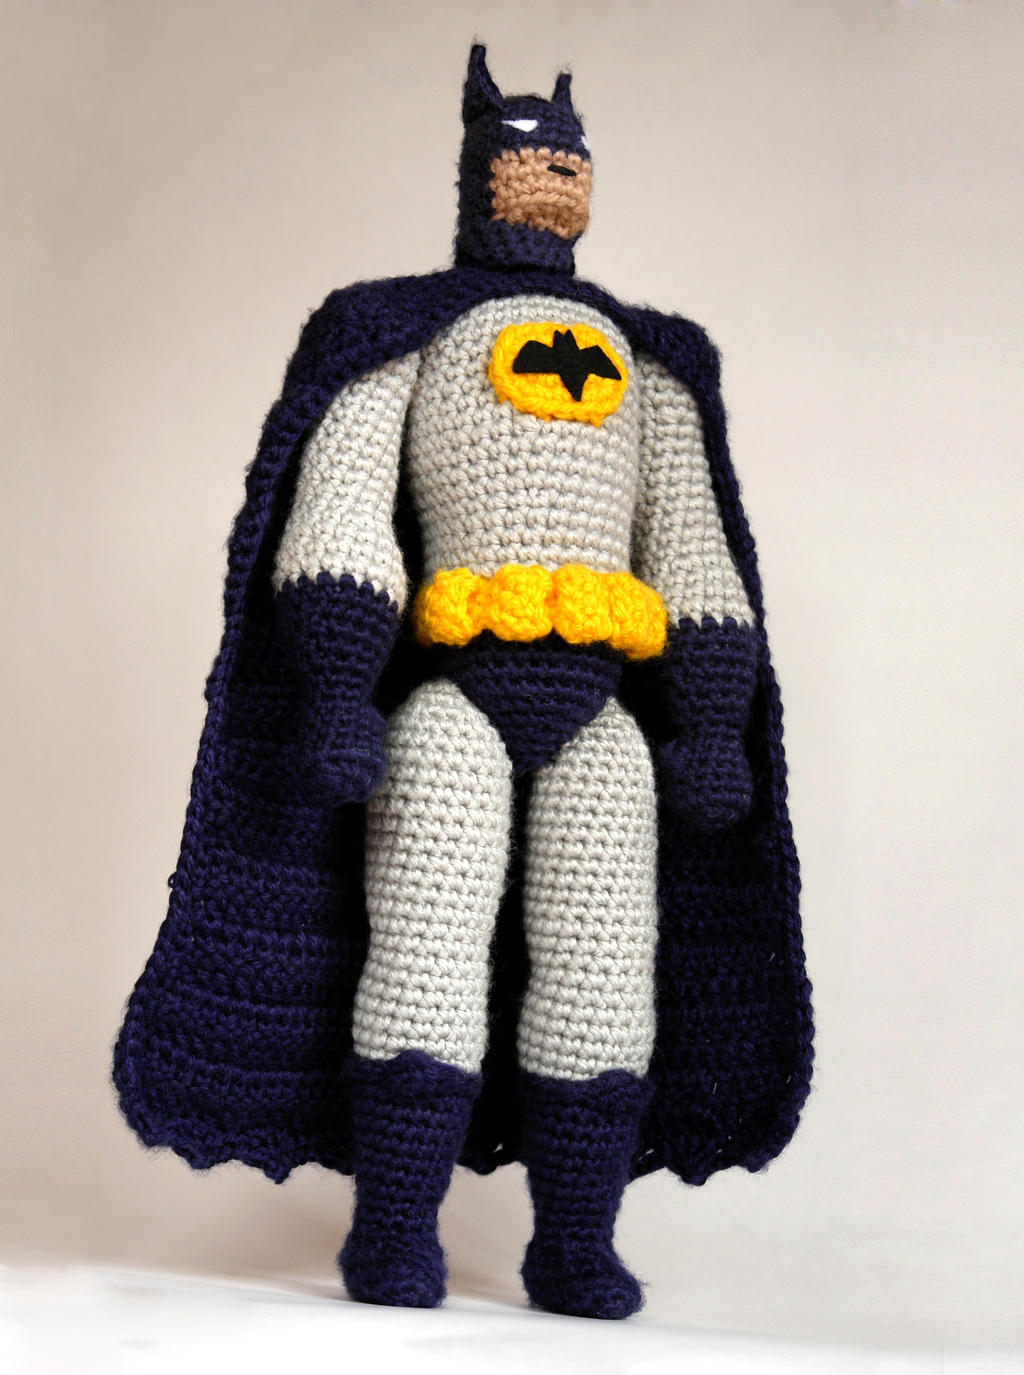 Batman crochet amigurumi doll by tinyAlchemy on DeviantArt